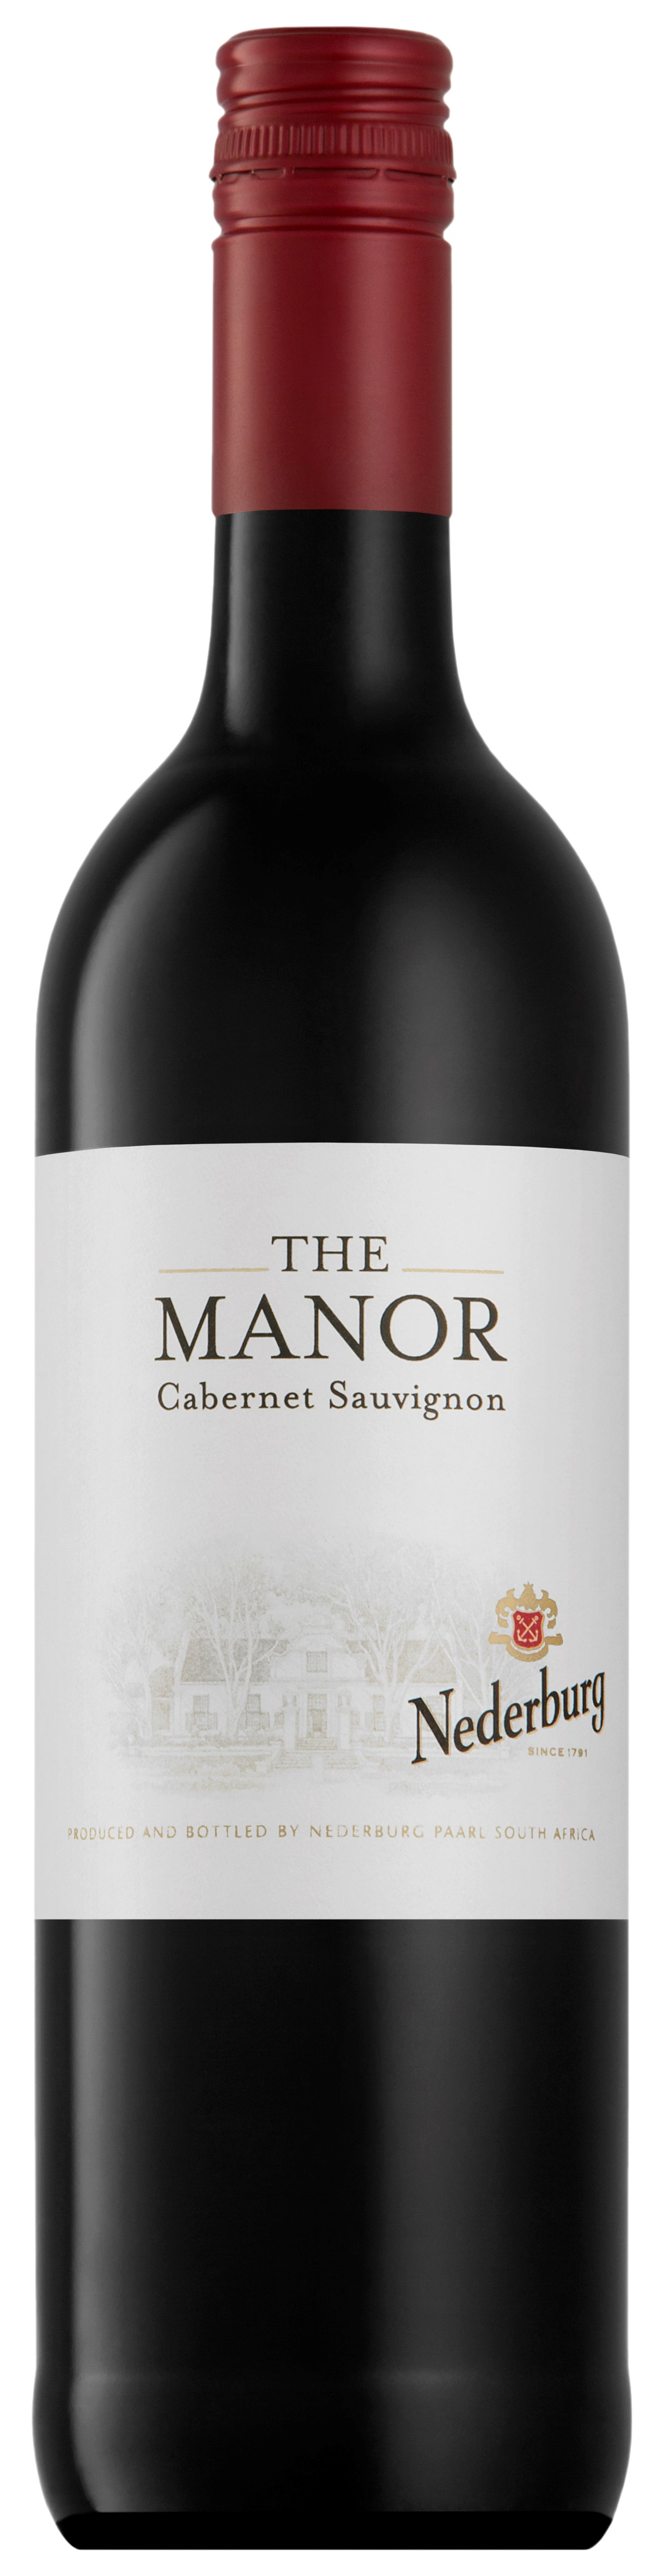 Nederburg The Manor, Cabernet Sauvignon